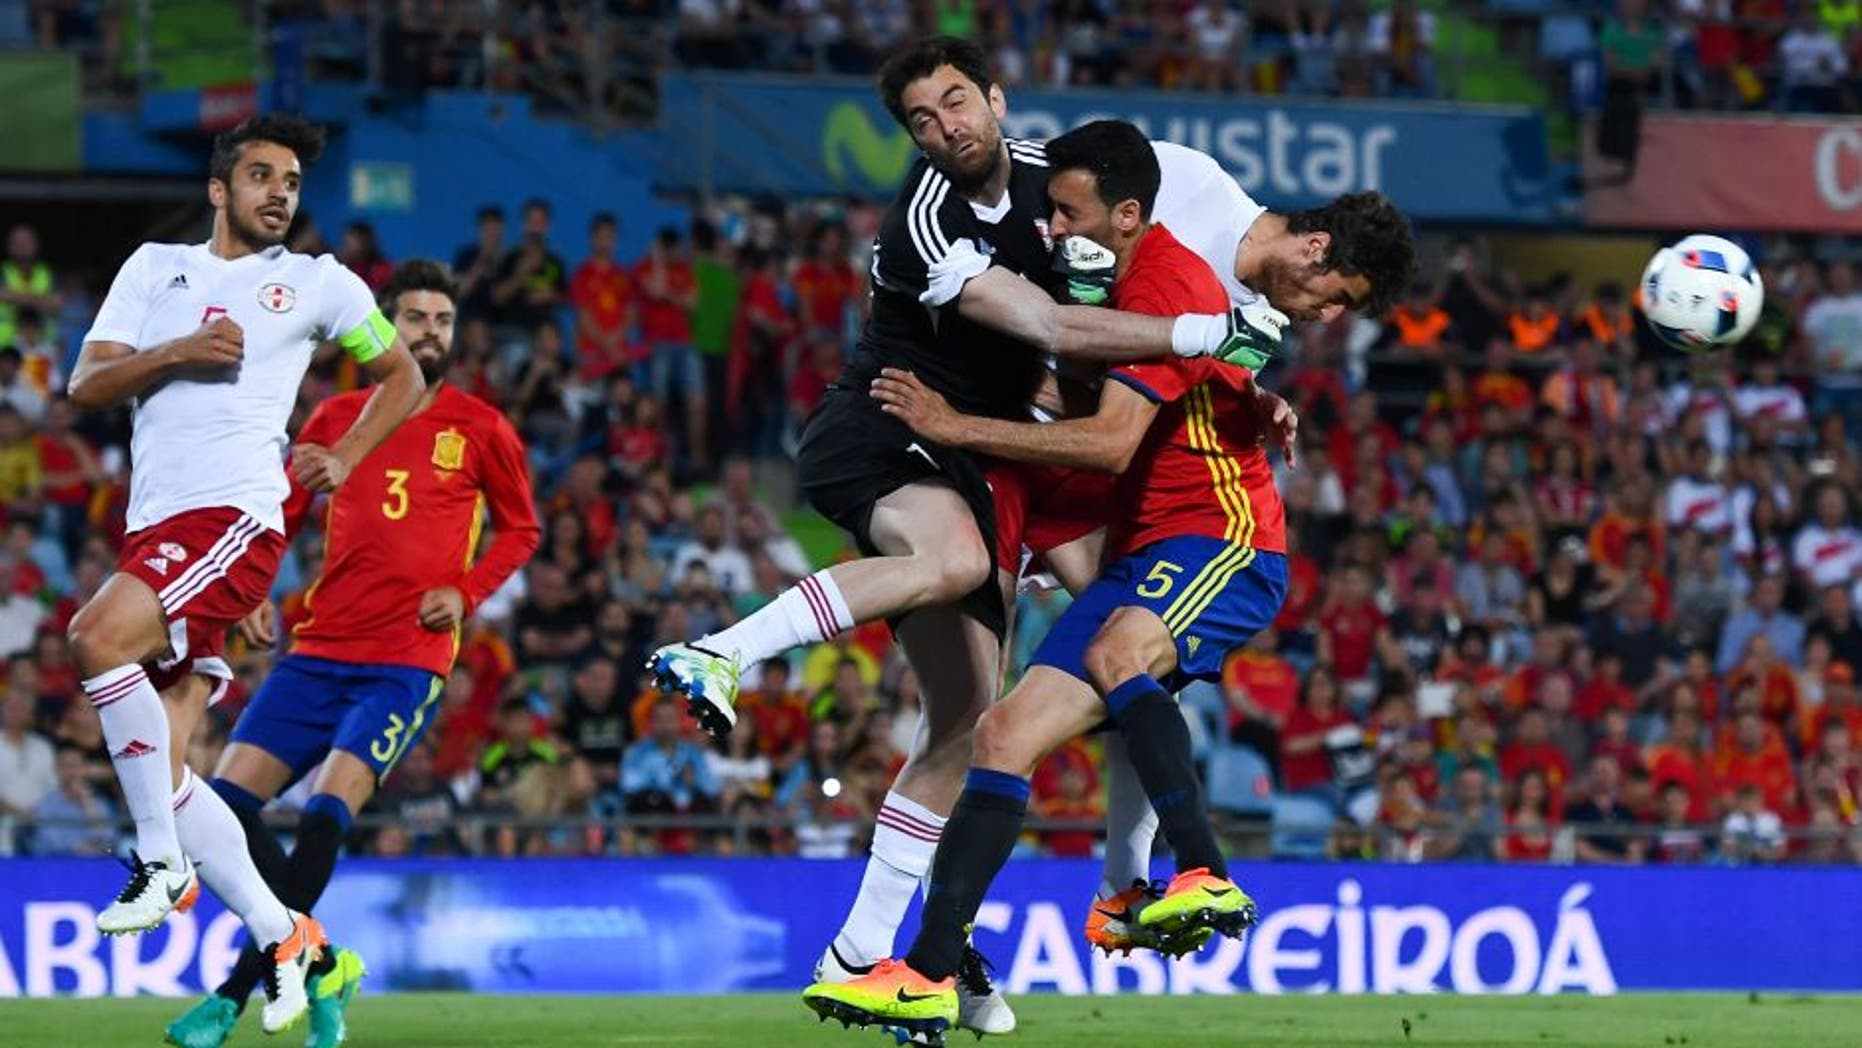 GETAFE, SPAIN - JUNE 07: Sergio Busquets of Spain collides with the goalkeeper Revishvili of Georgia during an international friendly match between Spain and Georgia at Alfonso Perez stadium on June 7, 2016 in Getafe, Spain. (Photo by David Ramos/Getty Images)